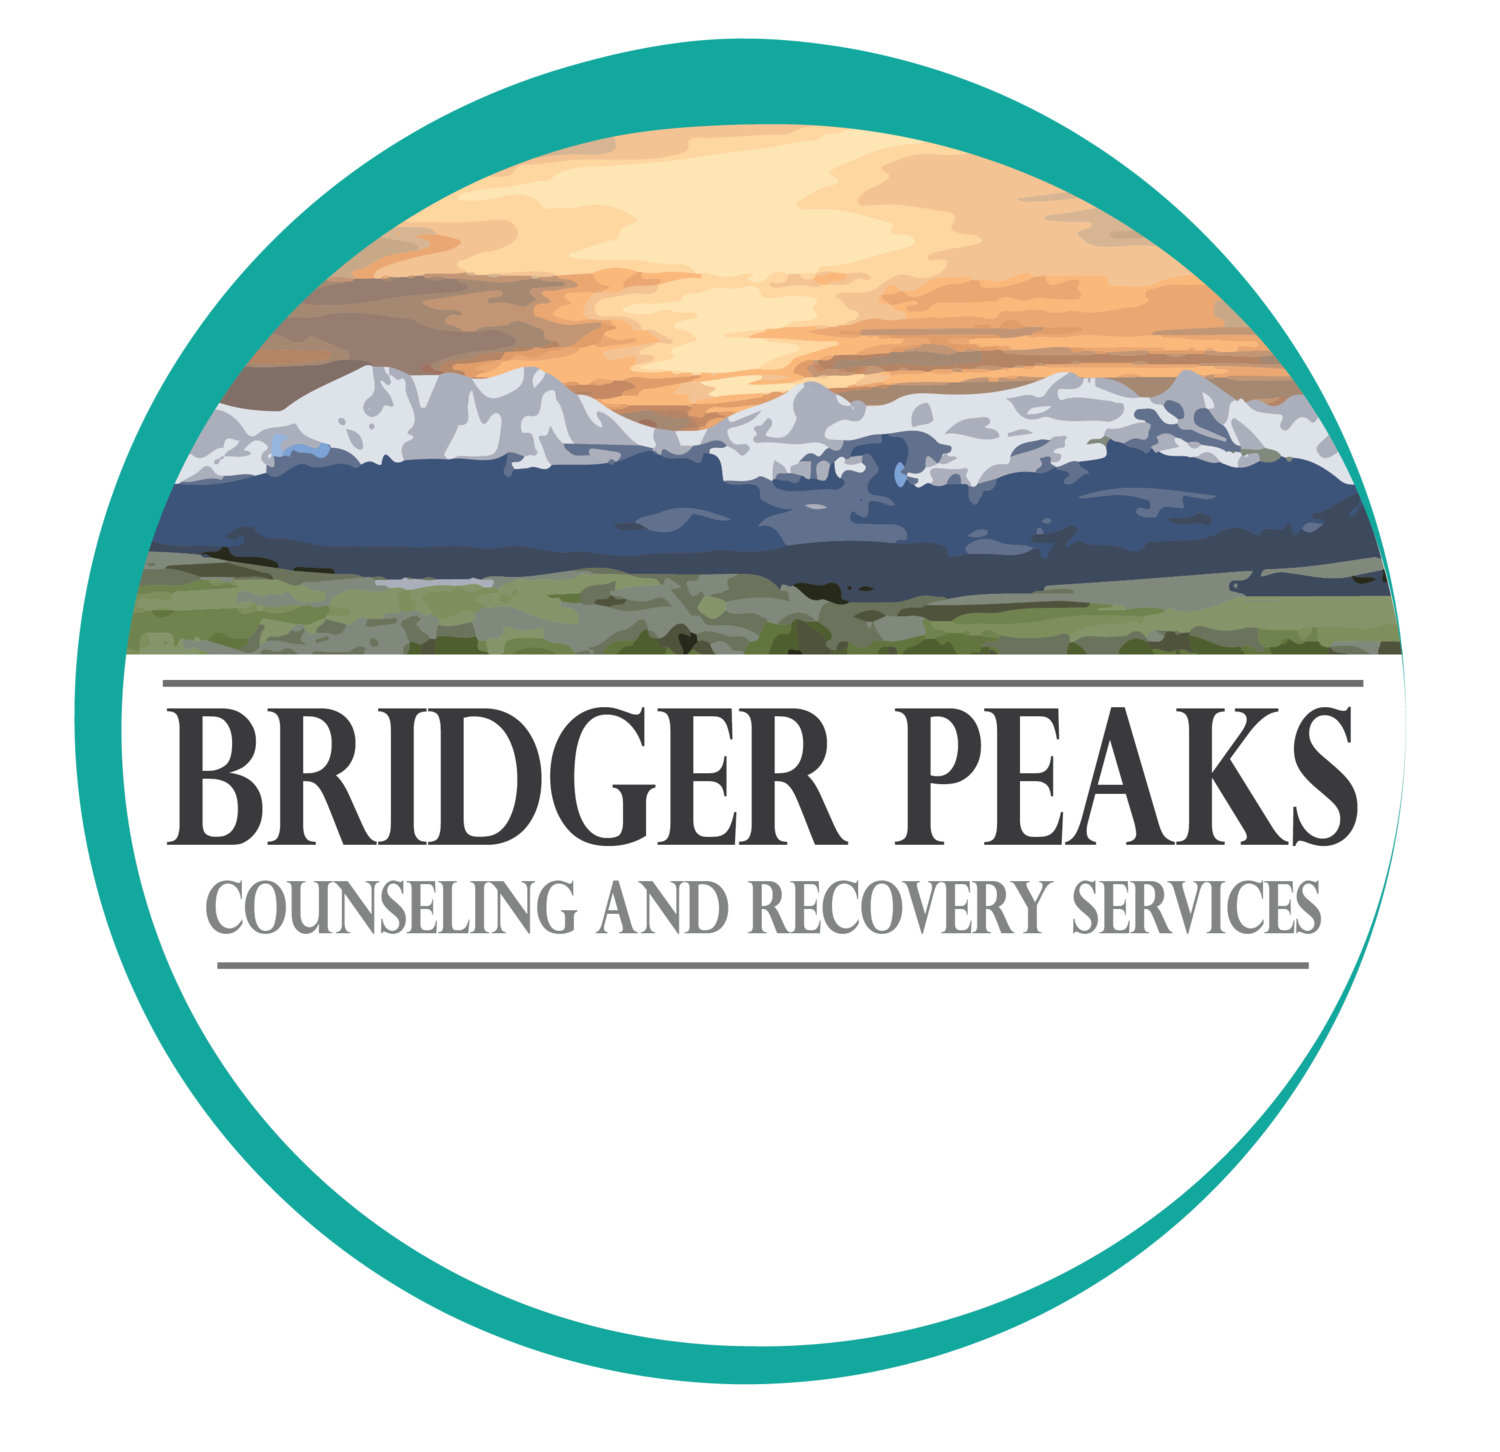 Bridger Peaks Counseling & Recovery Services